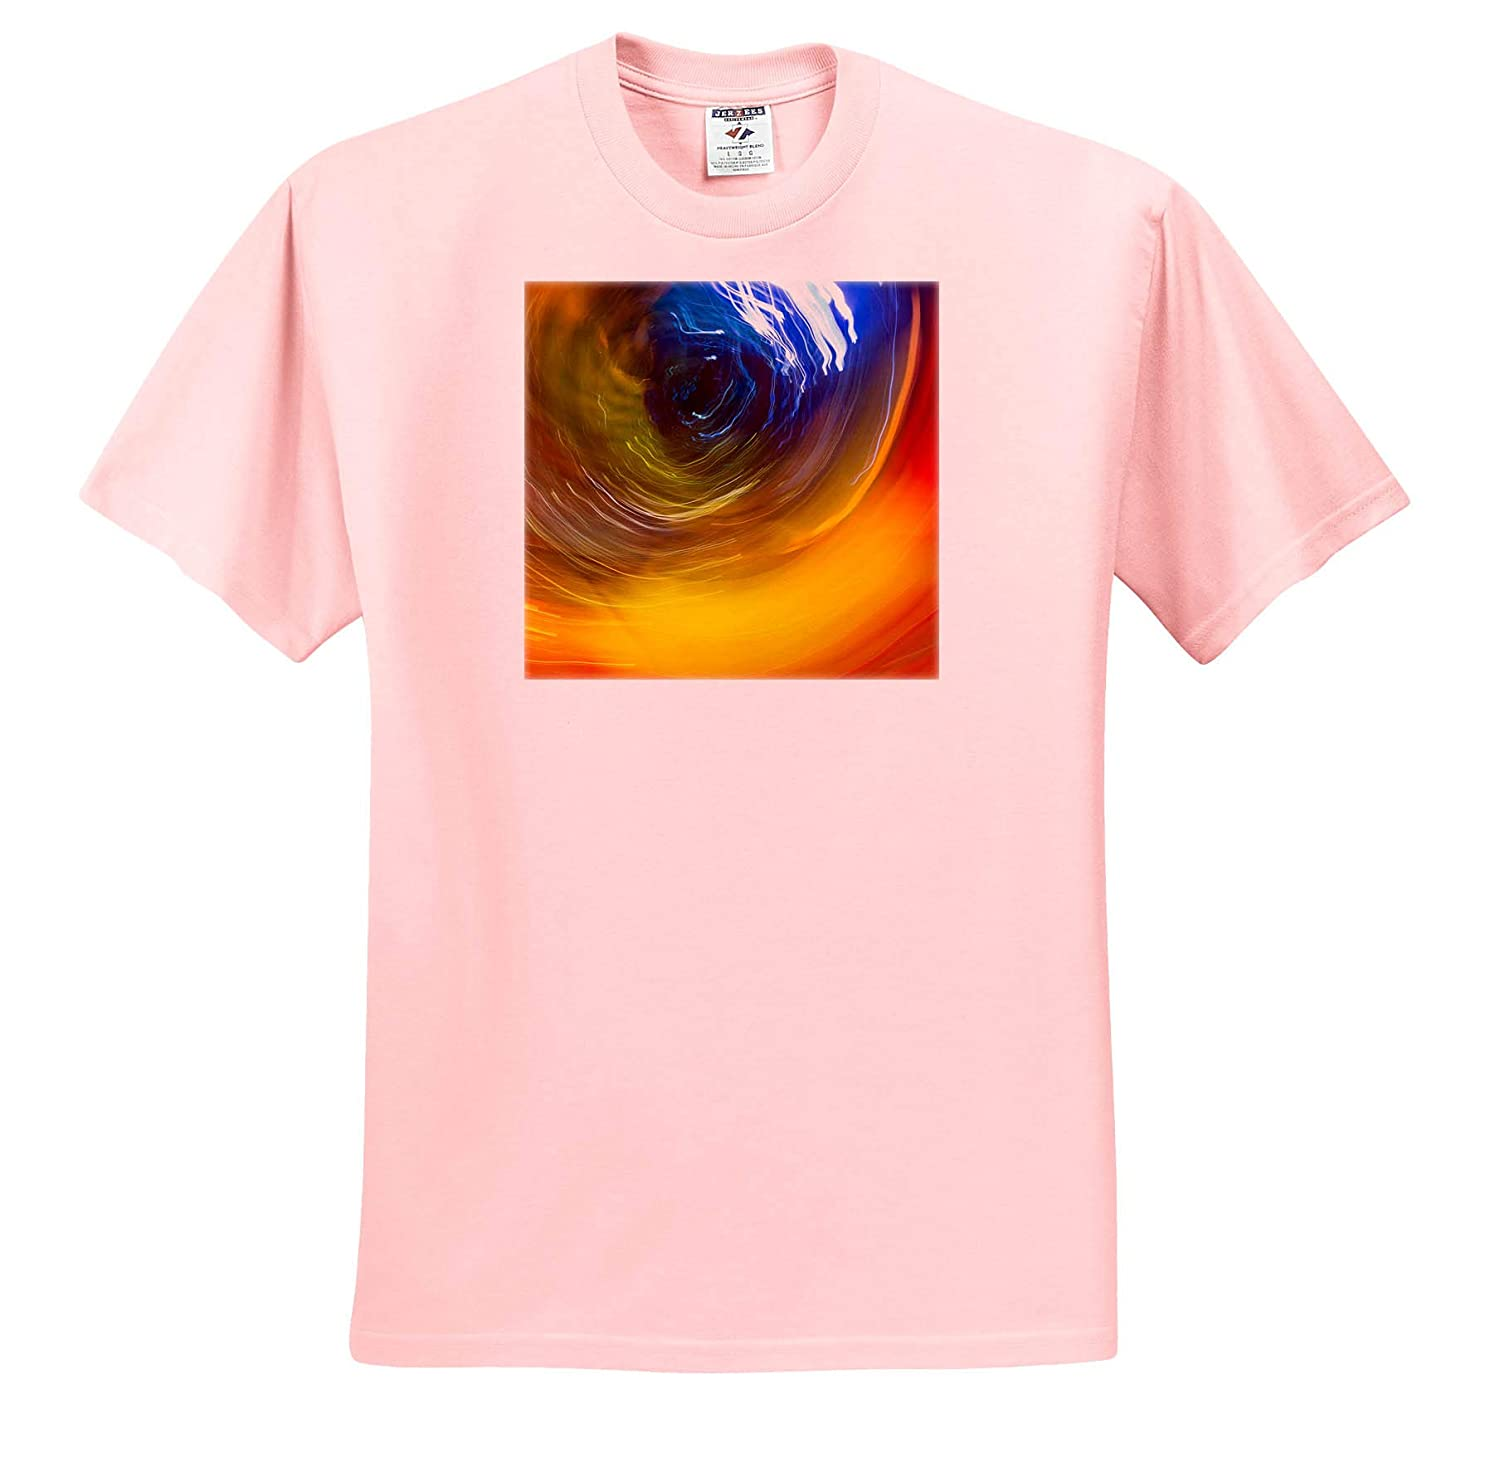 Adult T-Shirt XL 3dRose Danita Delimont Colorful Glass with Blurred Motion ts/_315188 Abstracts